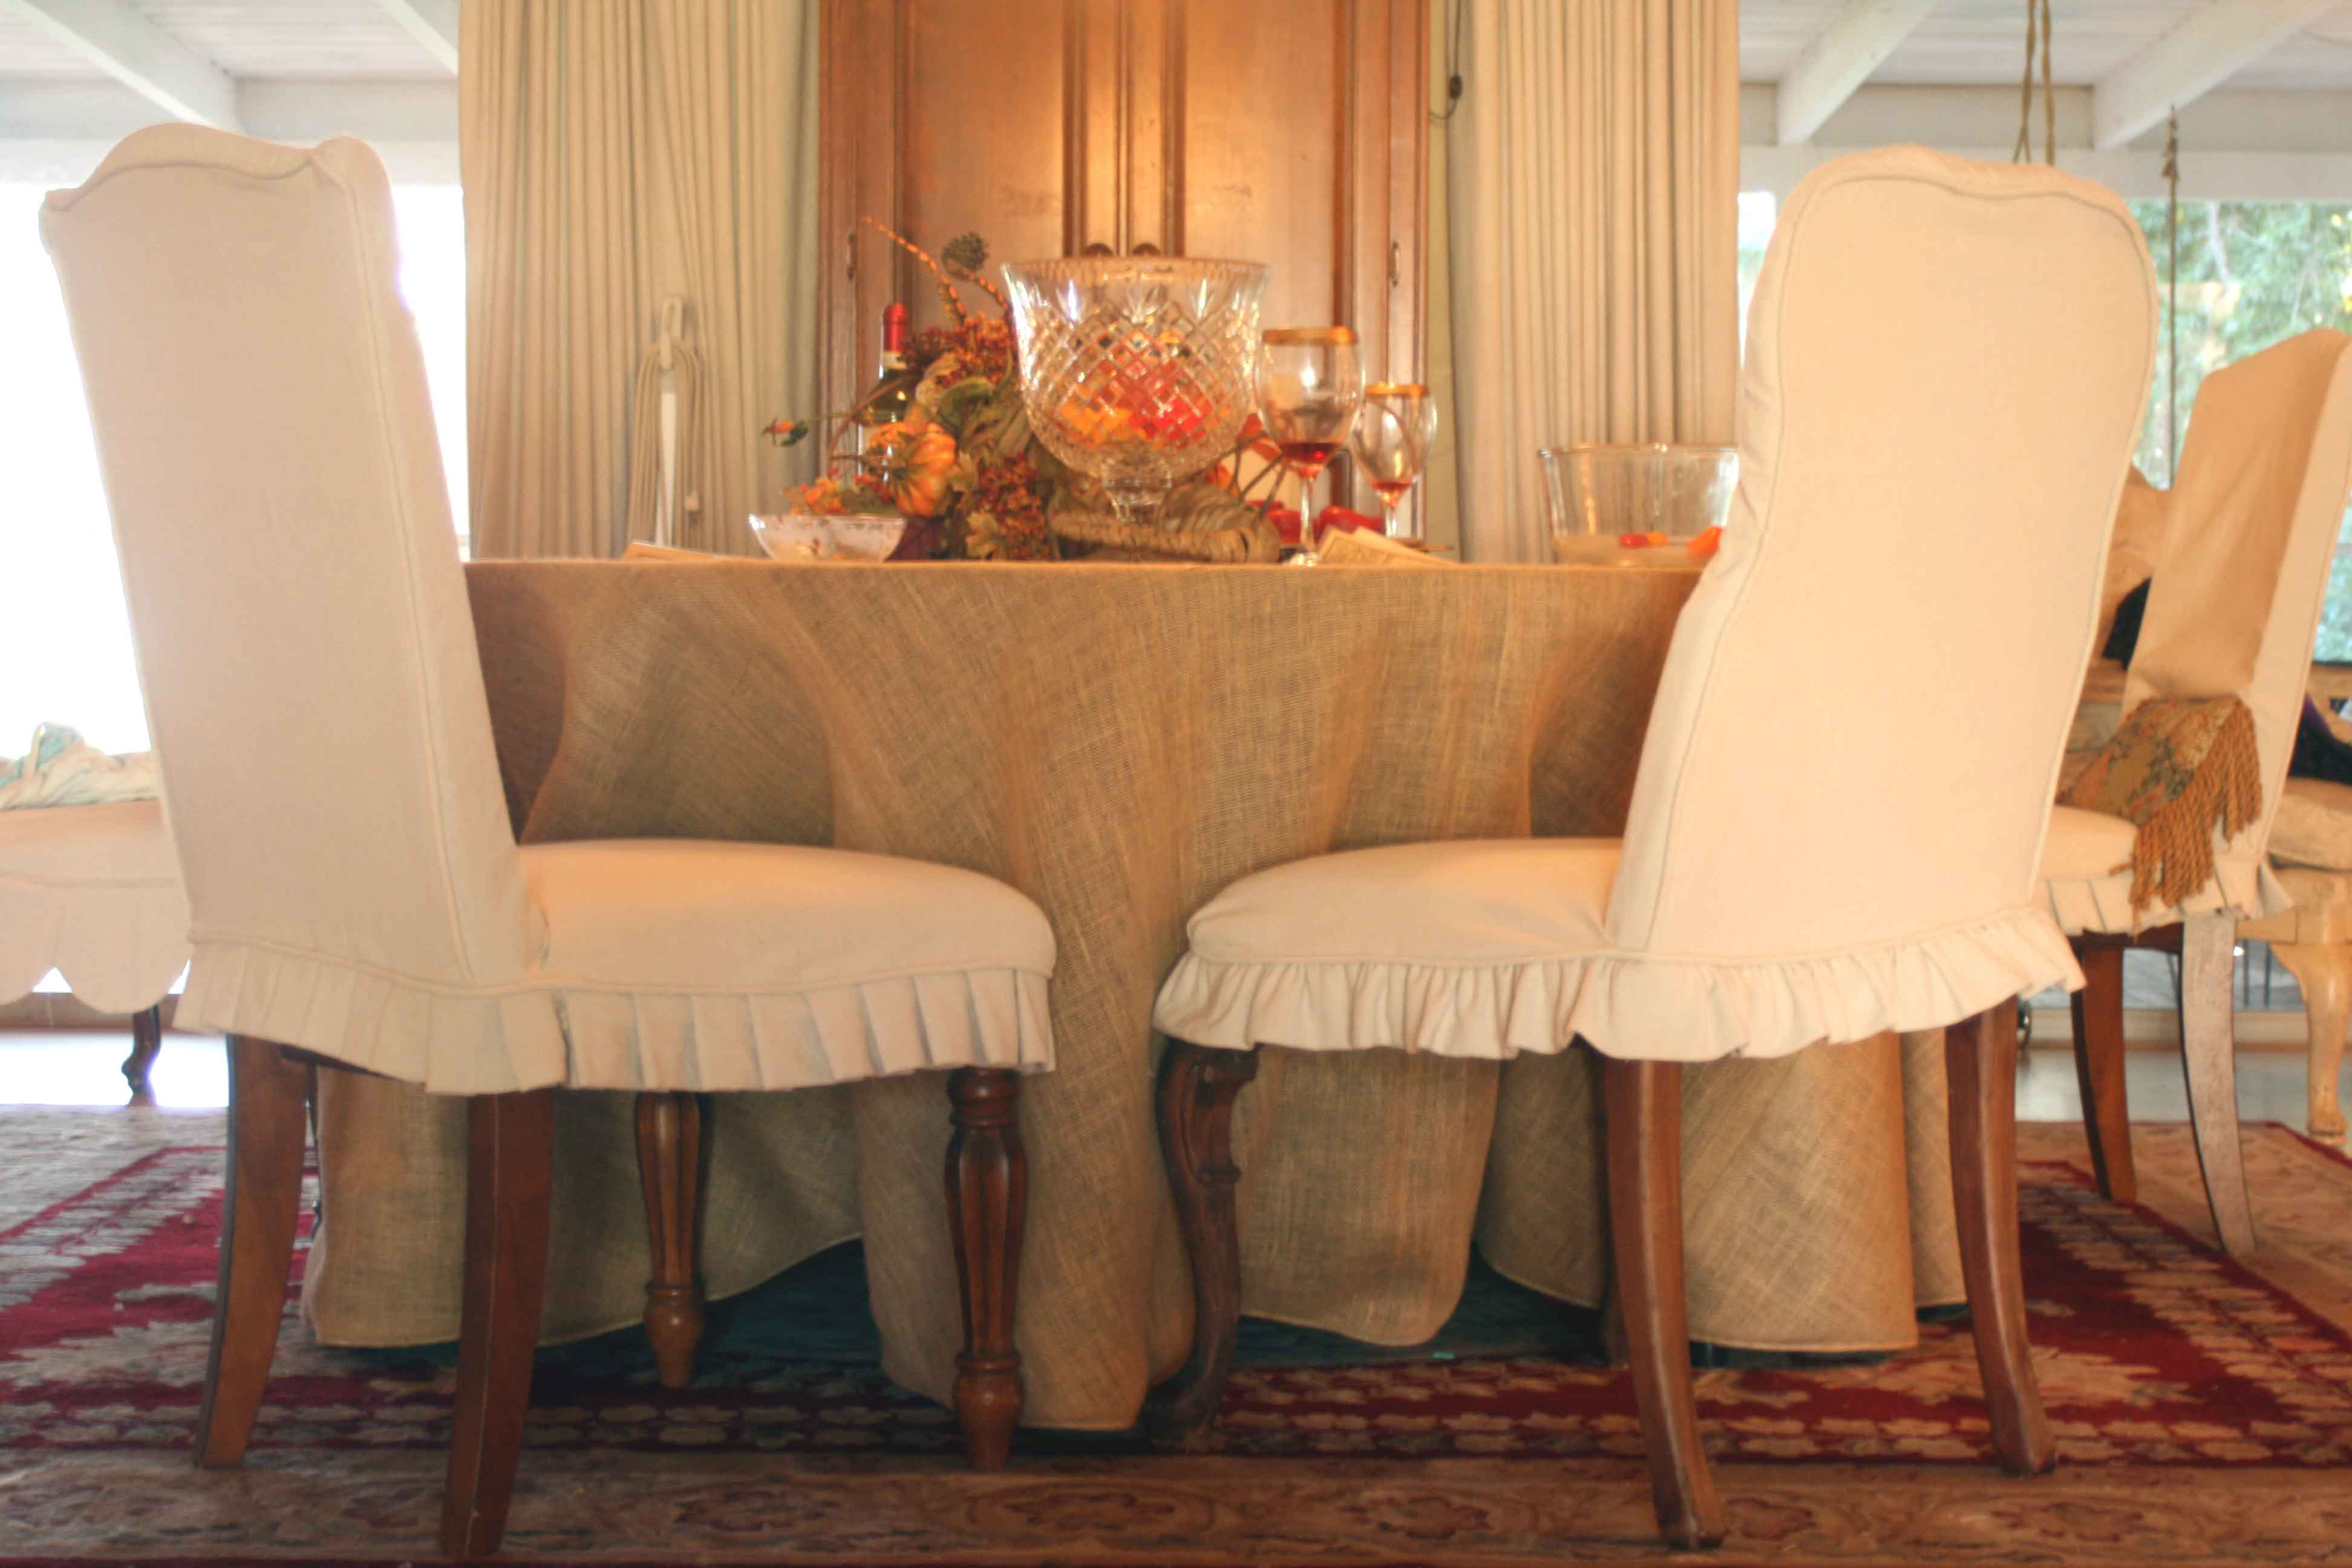 Dining chair slipcovers • mimzy & company